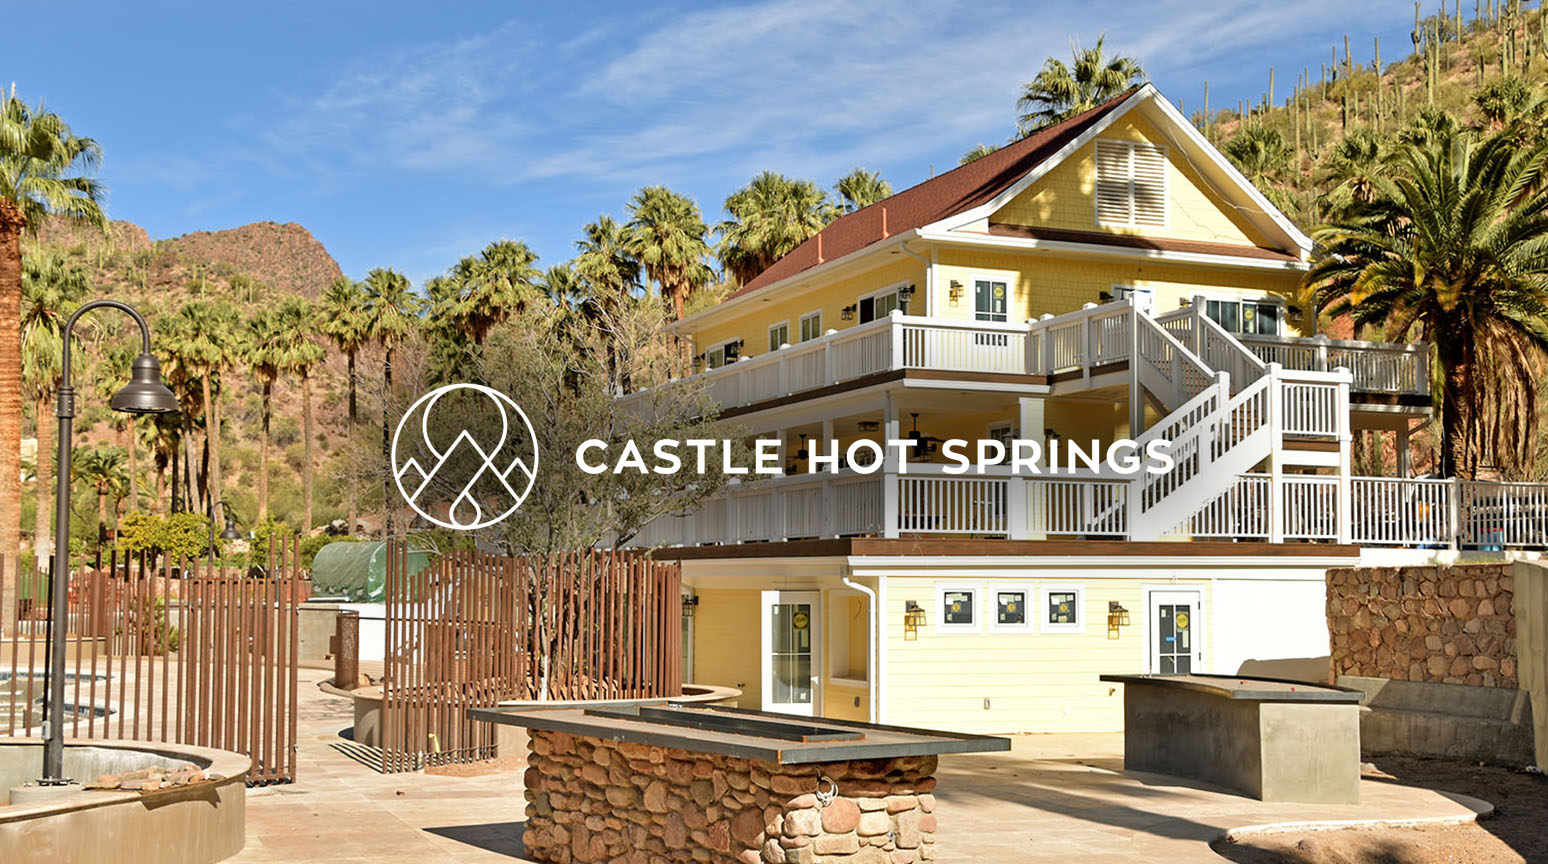 Castle Hot Springs